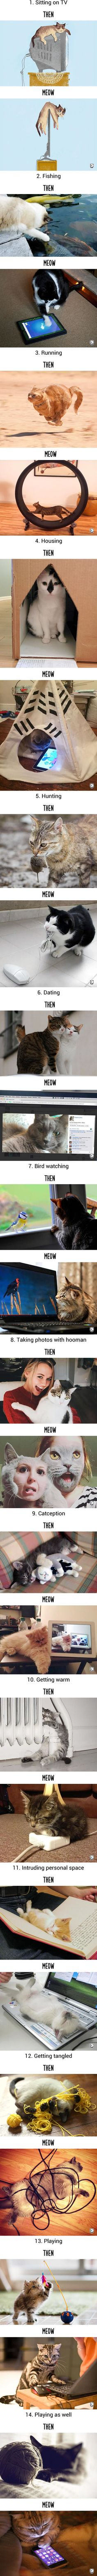 Then vs Meow: How Technology Has Changed Cats??? Lives (via 9gag)